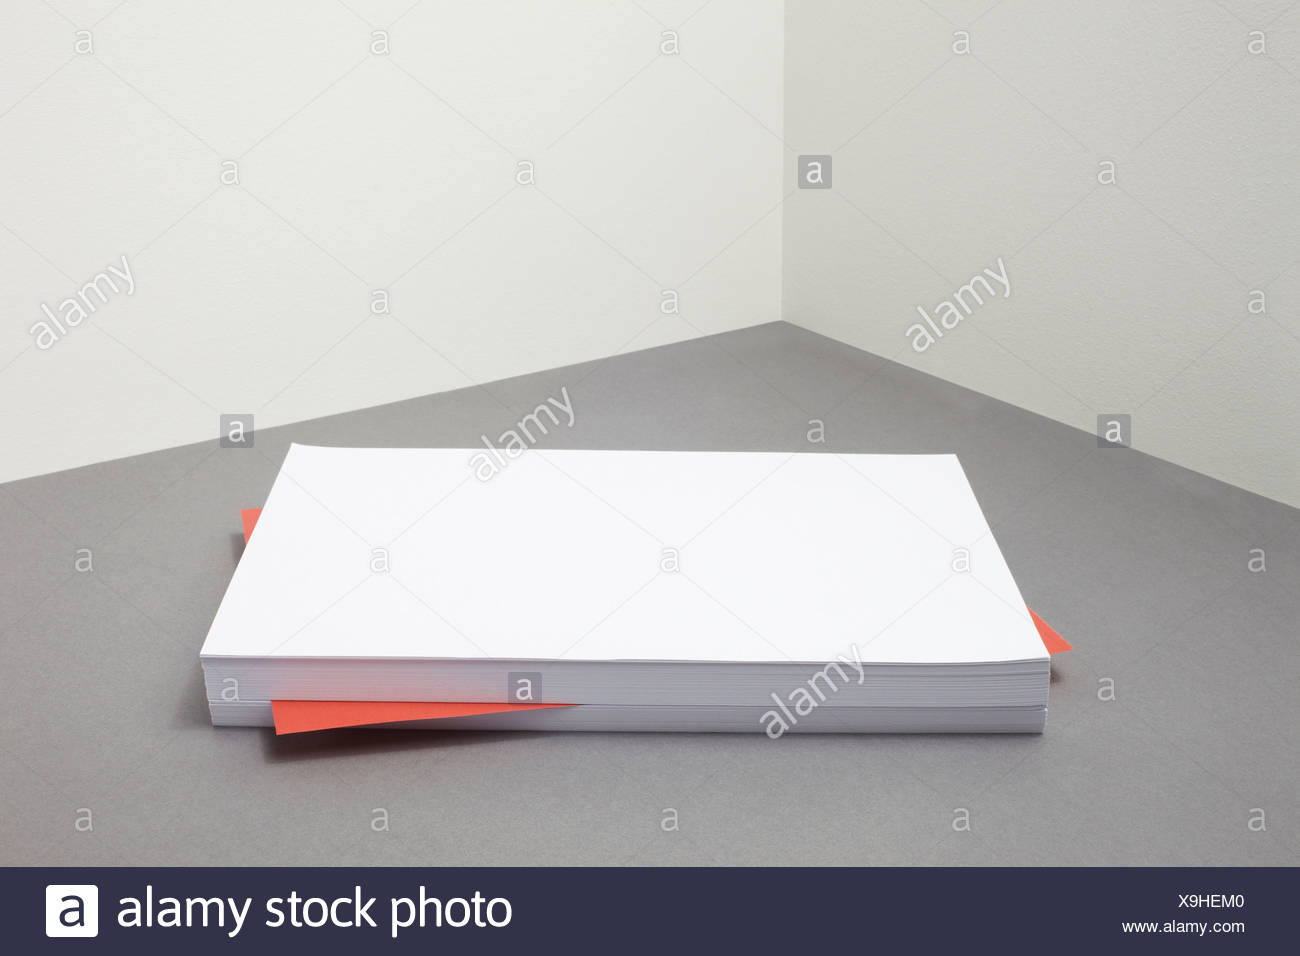 Red piece of paper amongst stack of blank paper - Stock Image